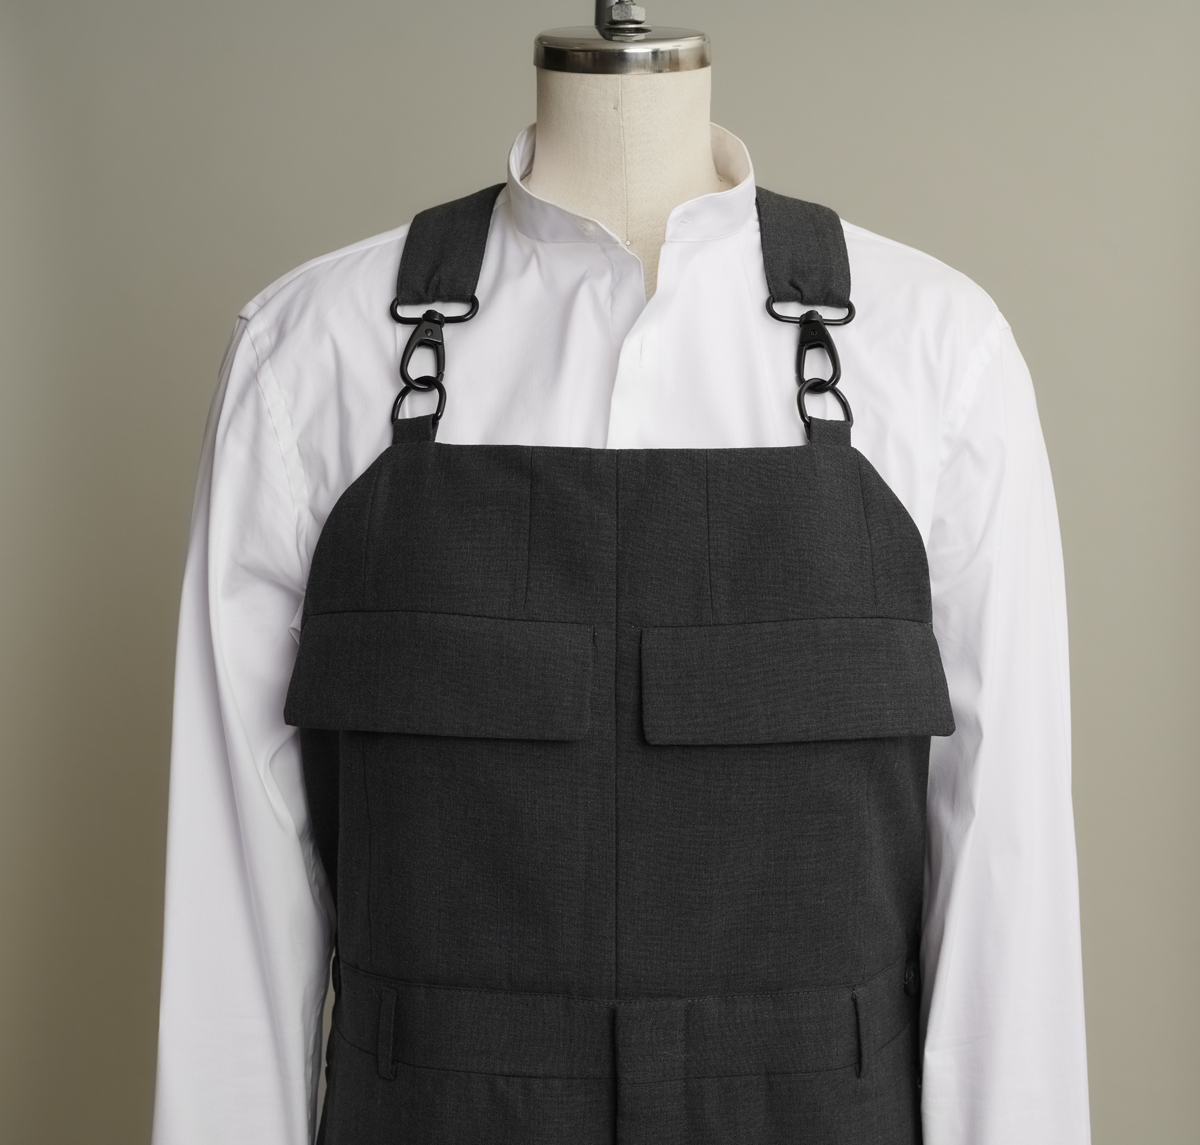 Ovrealls bib with pocket flaps harvested from repurposed men's suit